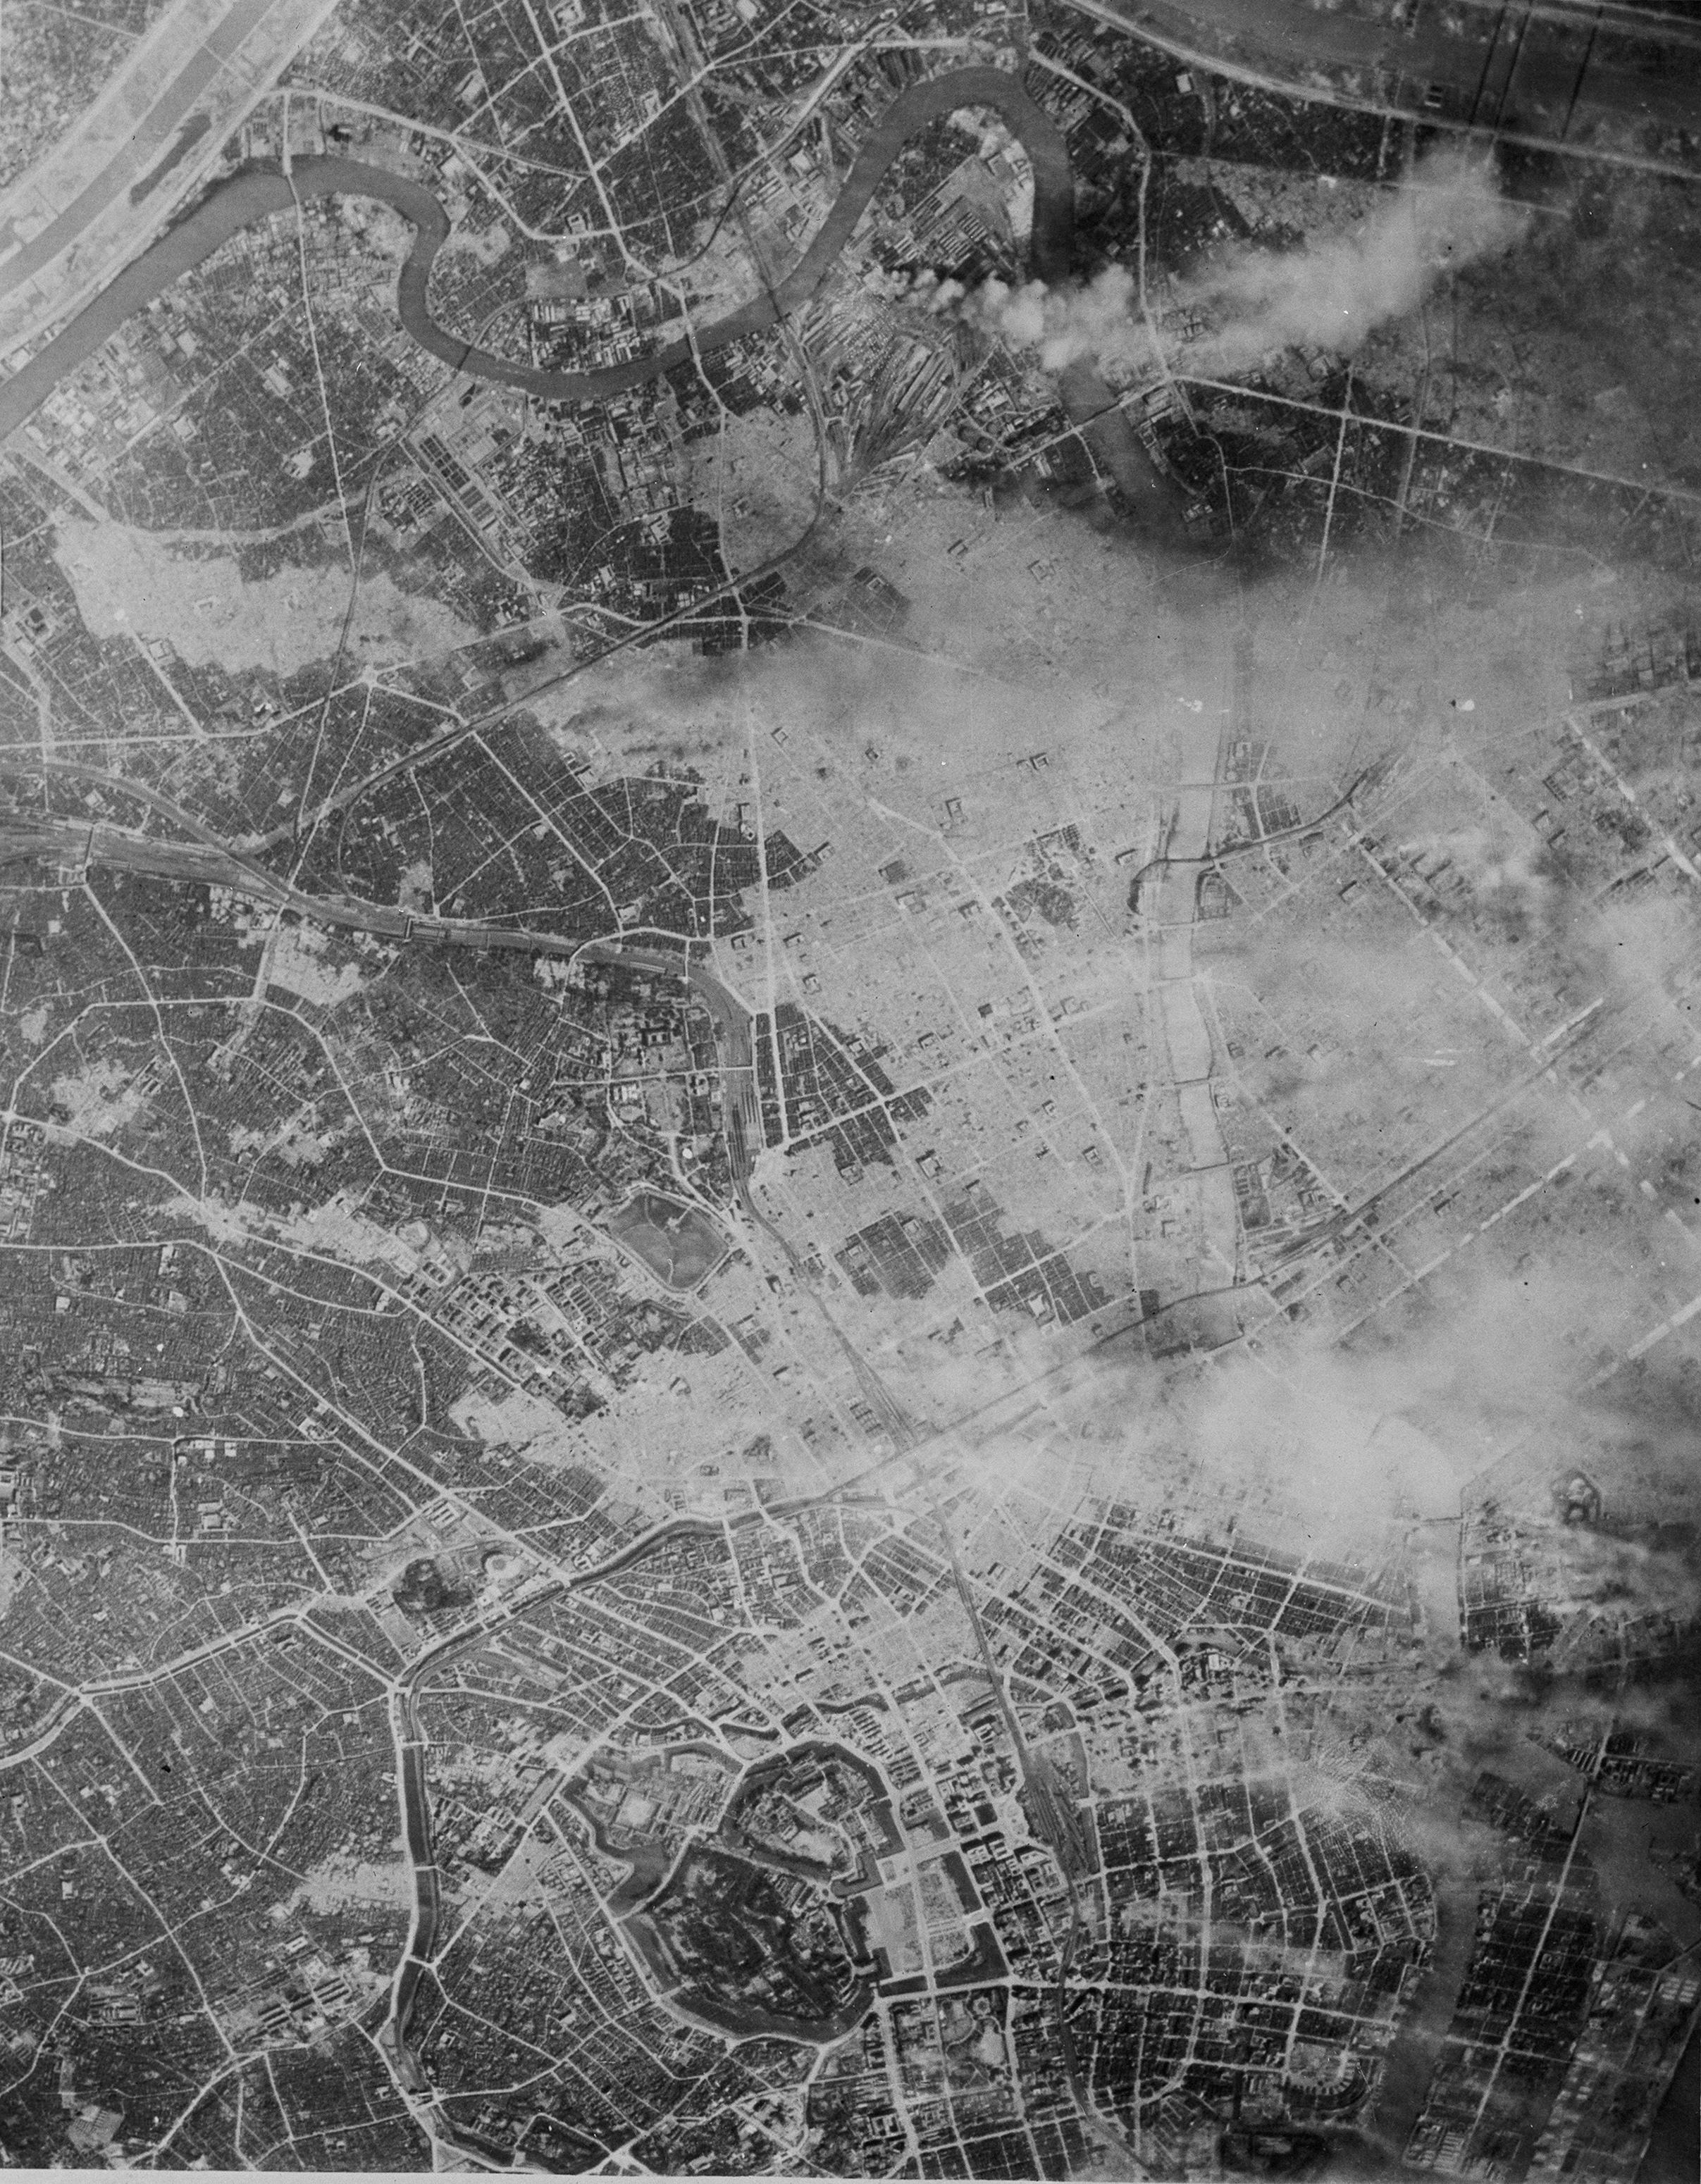 FILE - This March 10, 1945, file photo shows light sections, still smoking, several hours after a raid by more than 300 Marianas-based B-29s on Tokyo. The Imperial Palace, upper center, was undamaged, but burned up to the edge of the grounds. The bombs stopped falling 75 years ago, but it is entirely possible - crucial even, some argue - to view the region's world-beating economies, its massive cultural and political reach and its bitter trade, territory and history disputes all through a single prism: Japan's aggression in the Pacific during World War II. (AP Photo)